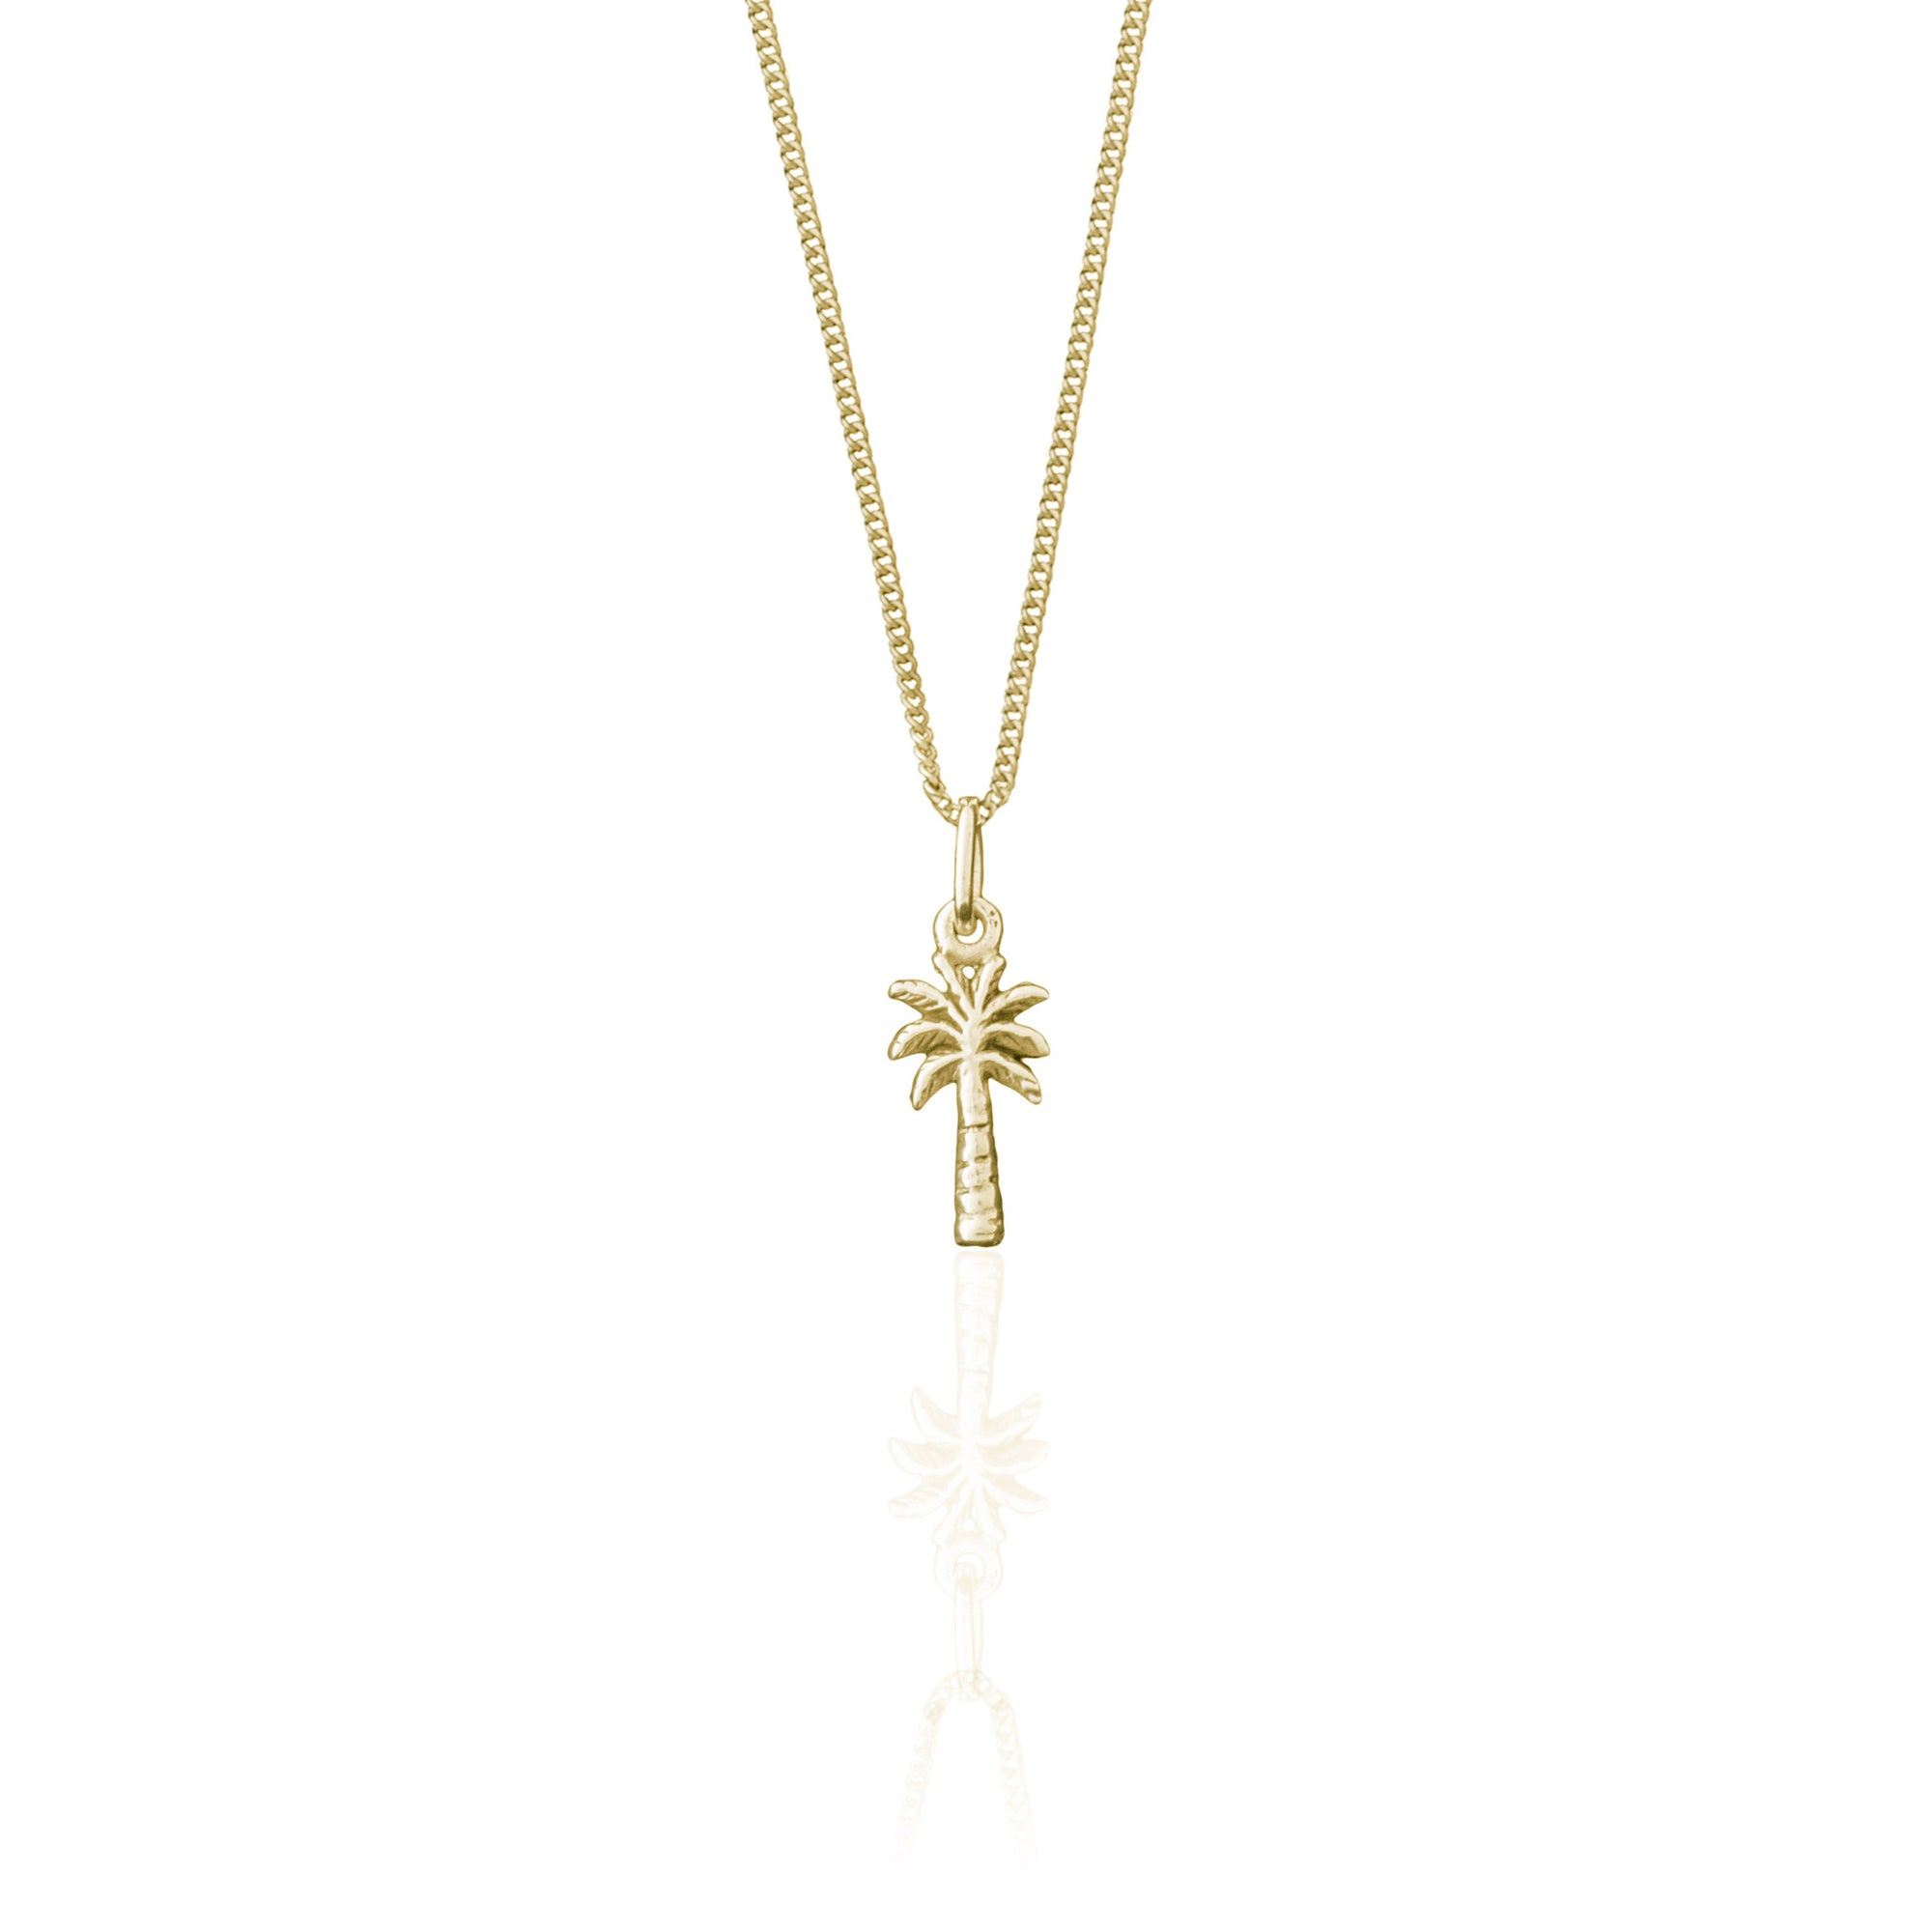 La Luna Rose Palm Springs Charm Necklace - Gold